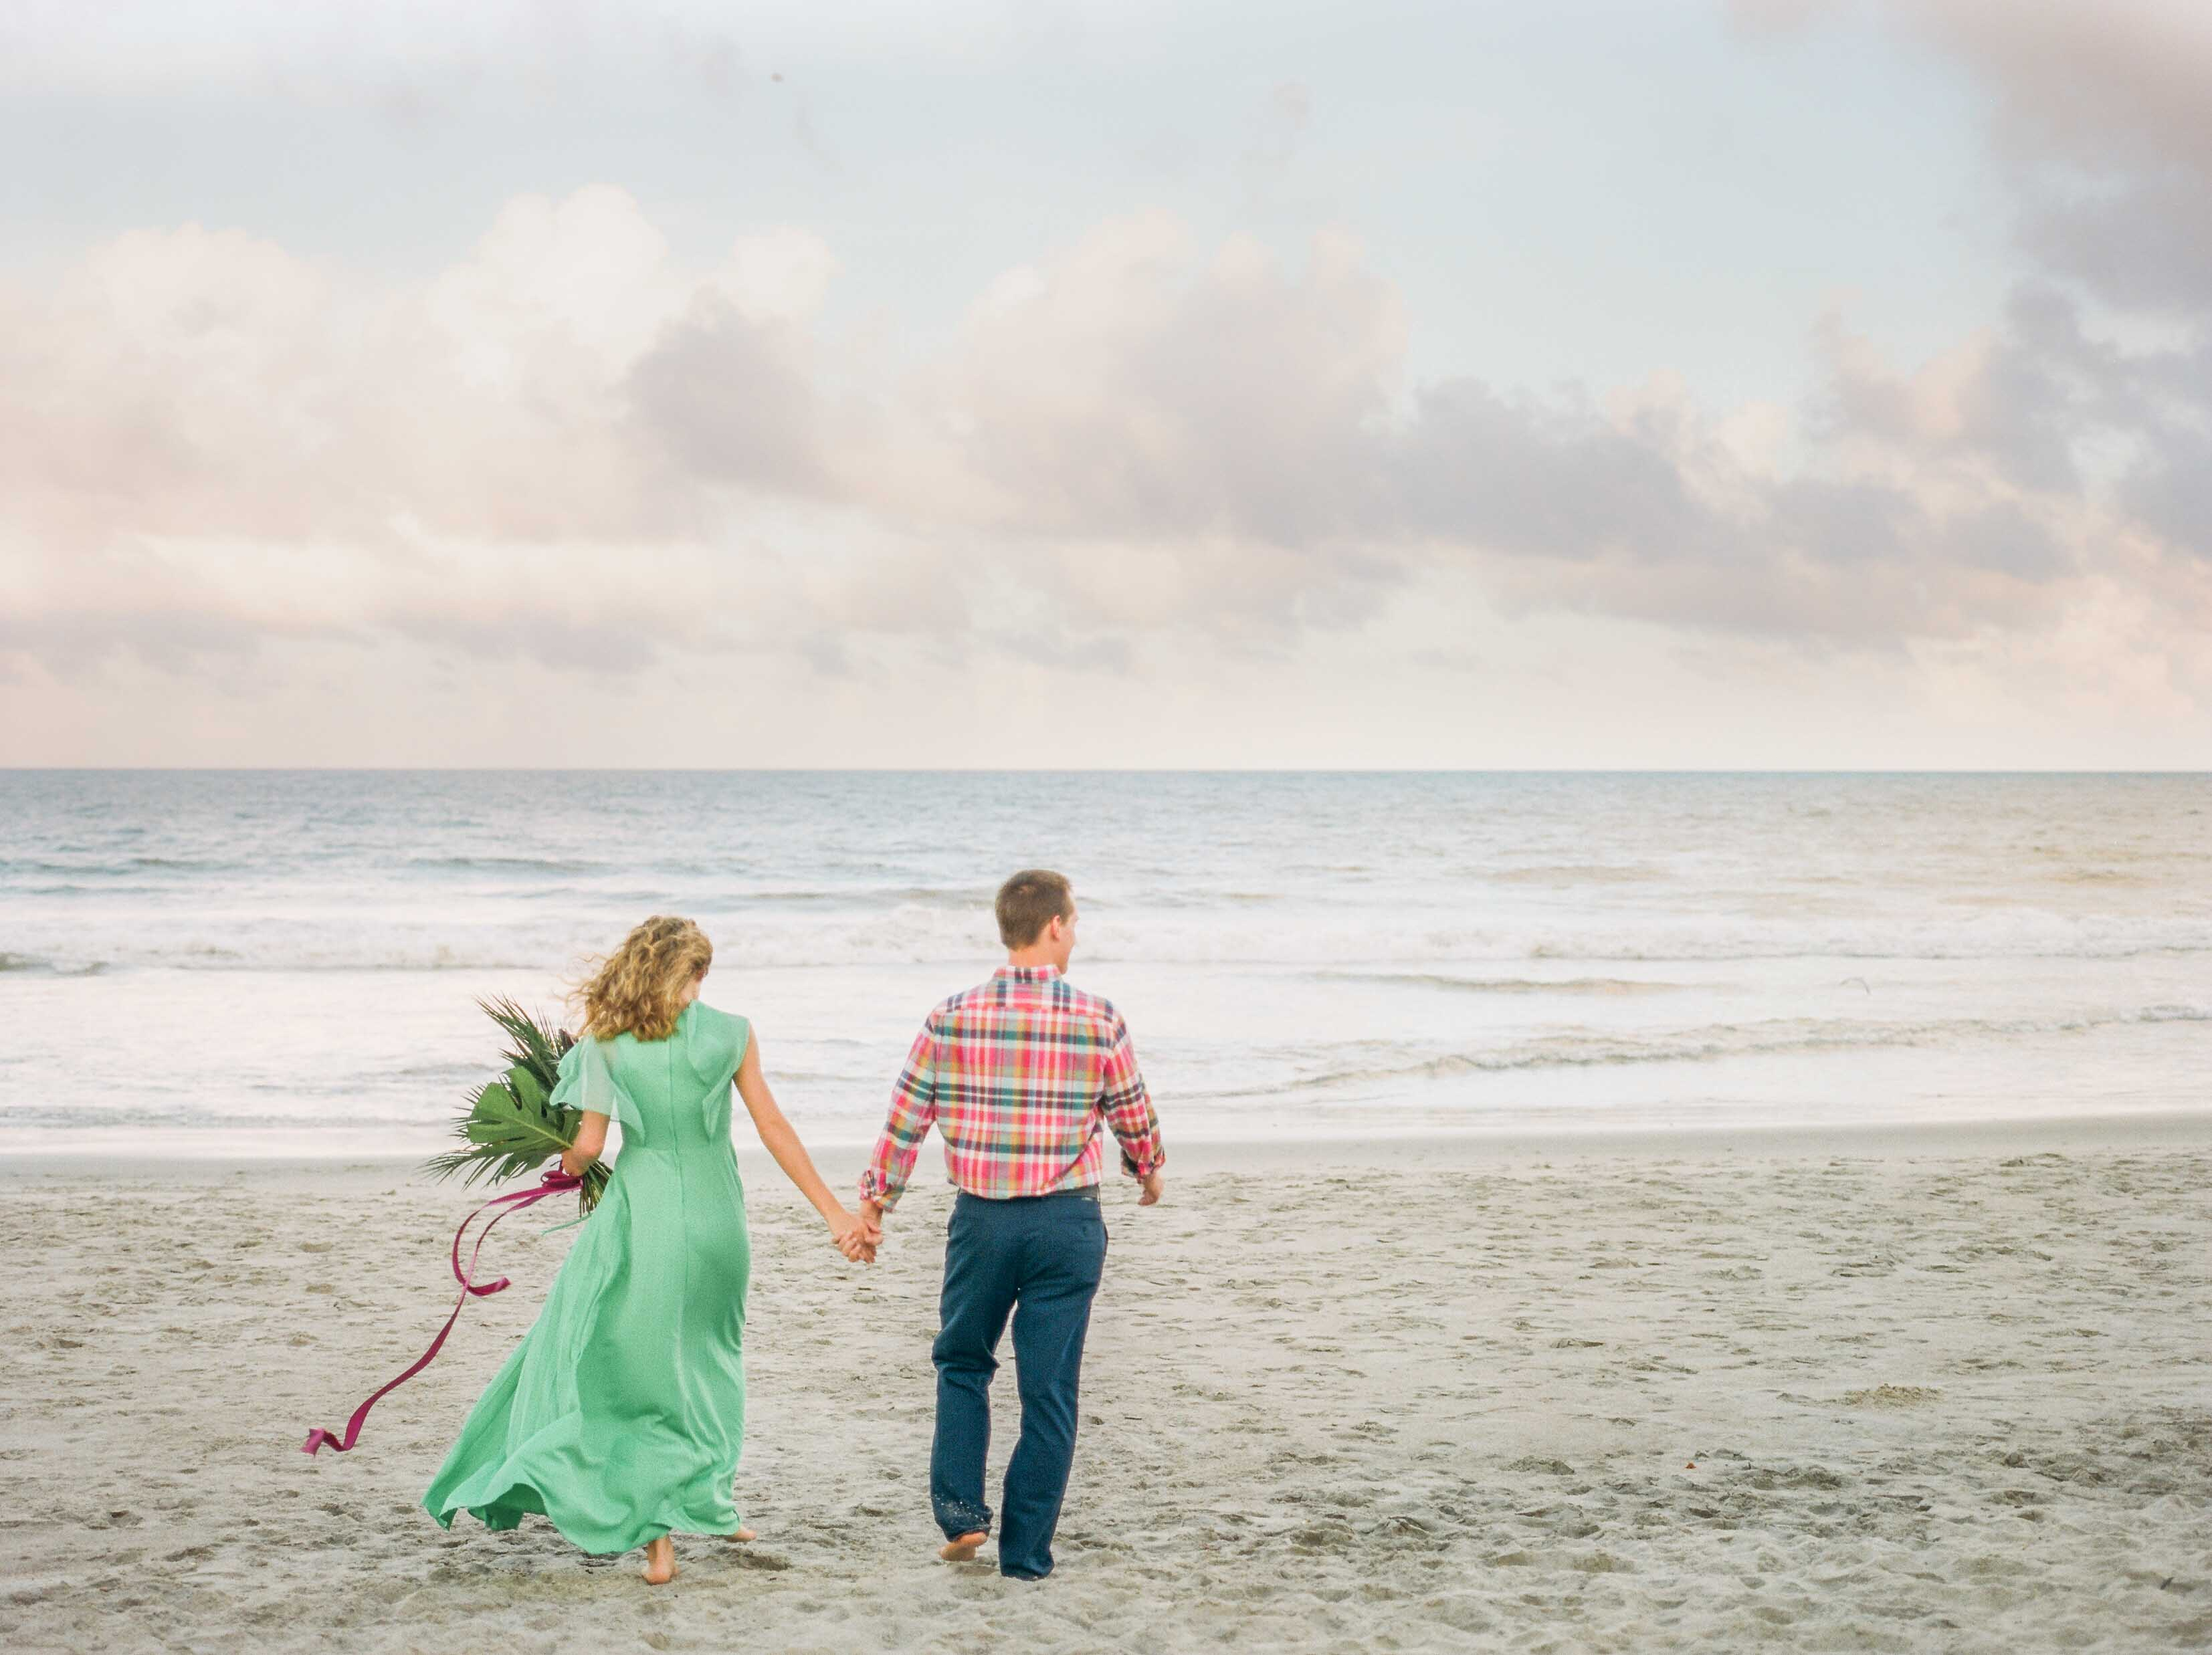 wilmington beach wedding ft. fisher photographer